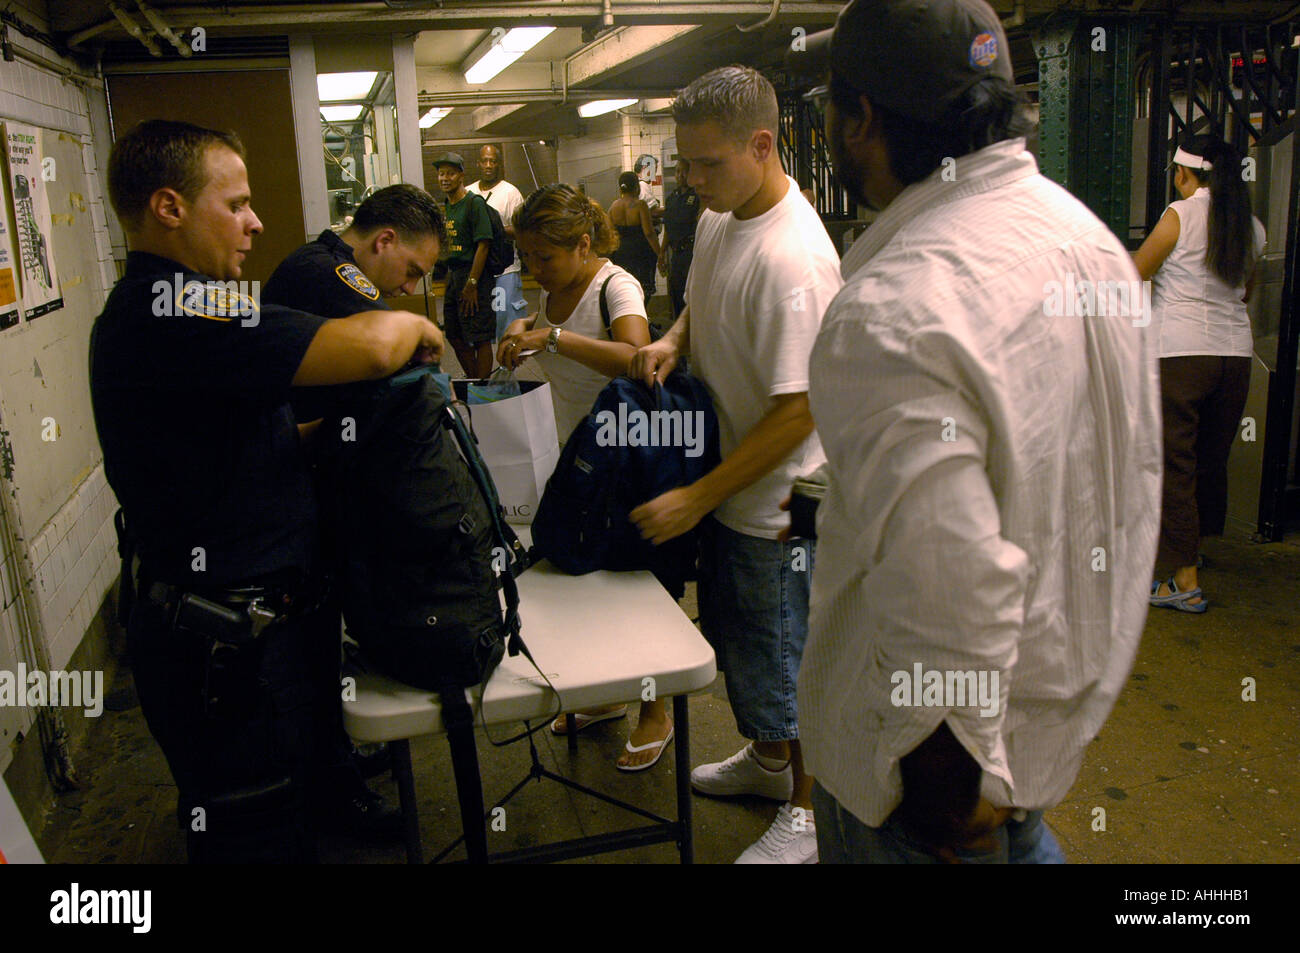 NYPD officers perform random checks on commuters bags at the West Fourth Street subway station in Greenwich Village Since the bombings in London police have instituted inspections under strict guidelines so as to insure the checks are random and no profiling occurs - Stock Image